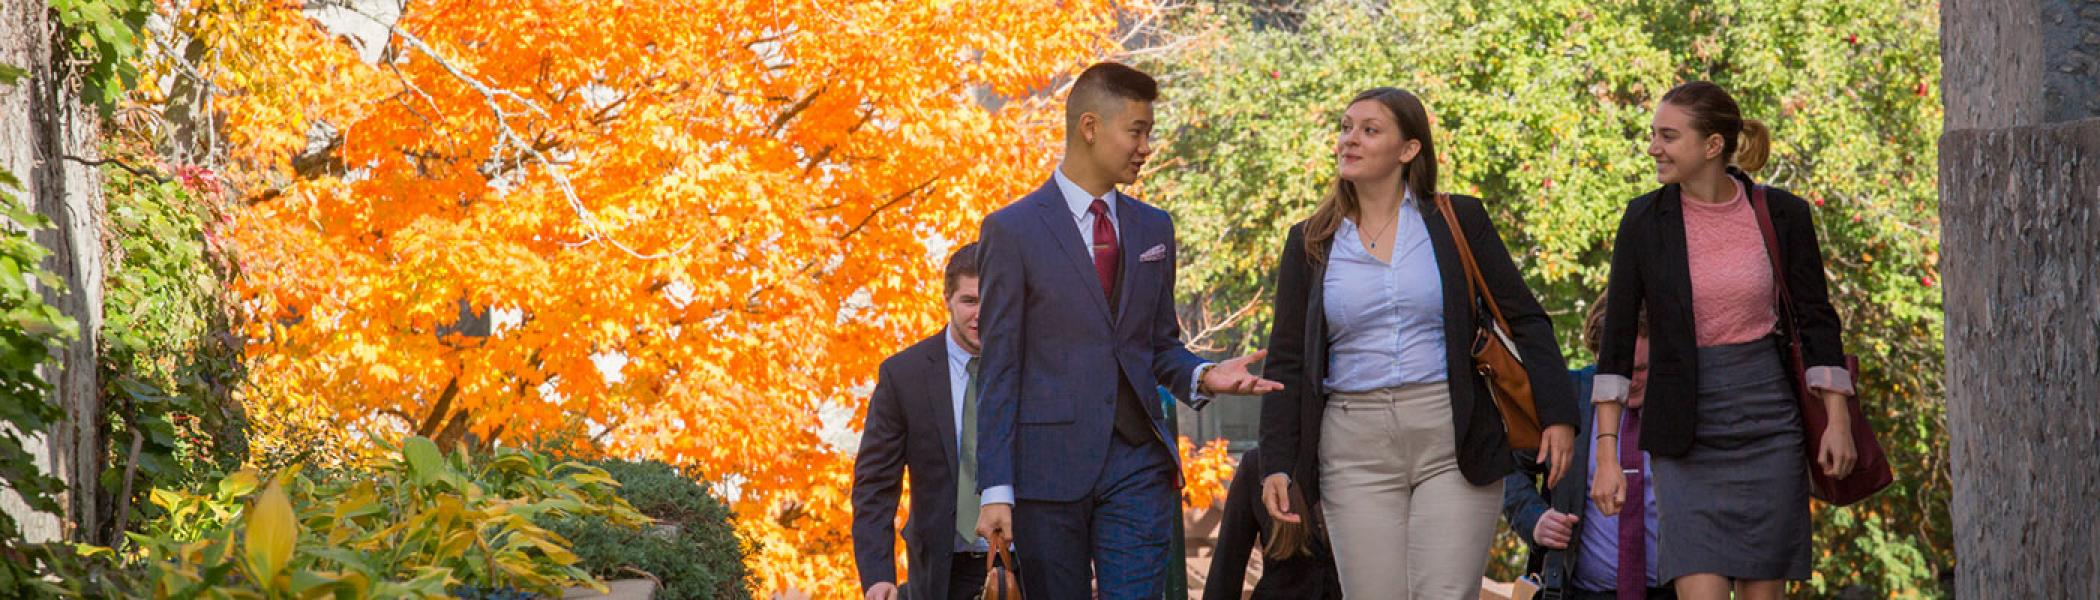 Business students walking up steps, trees with orange leaves behind them.